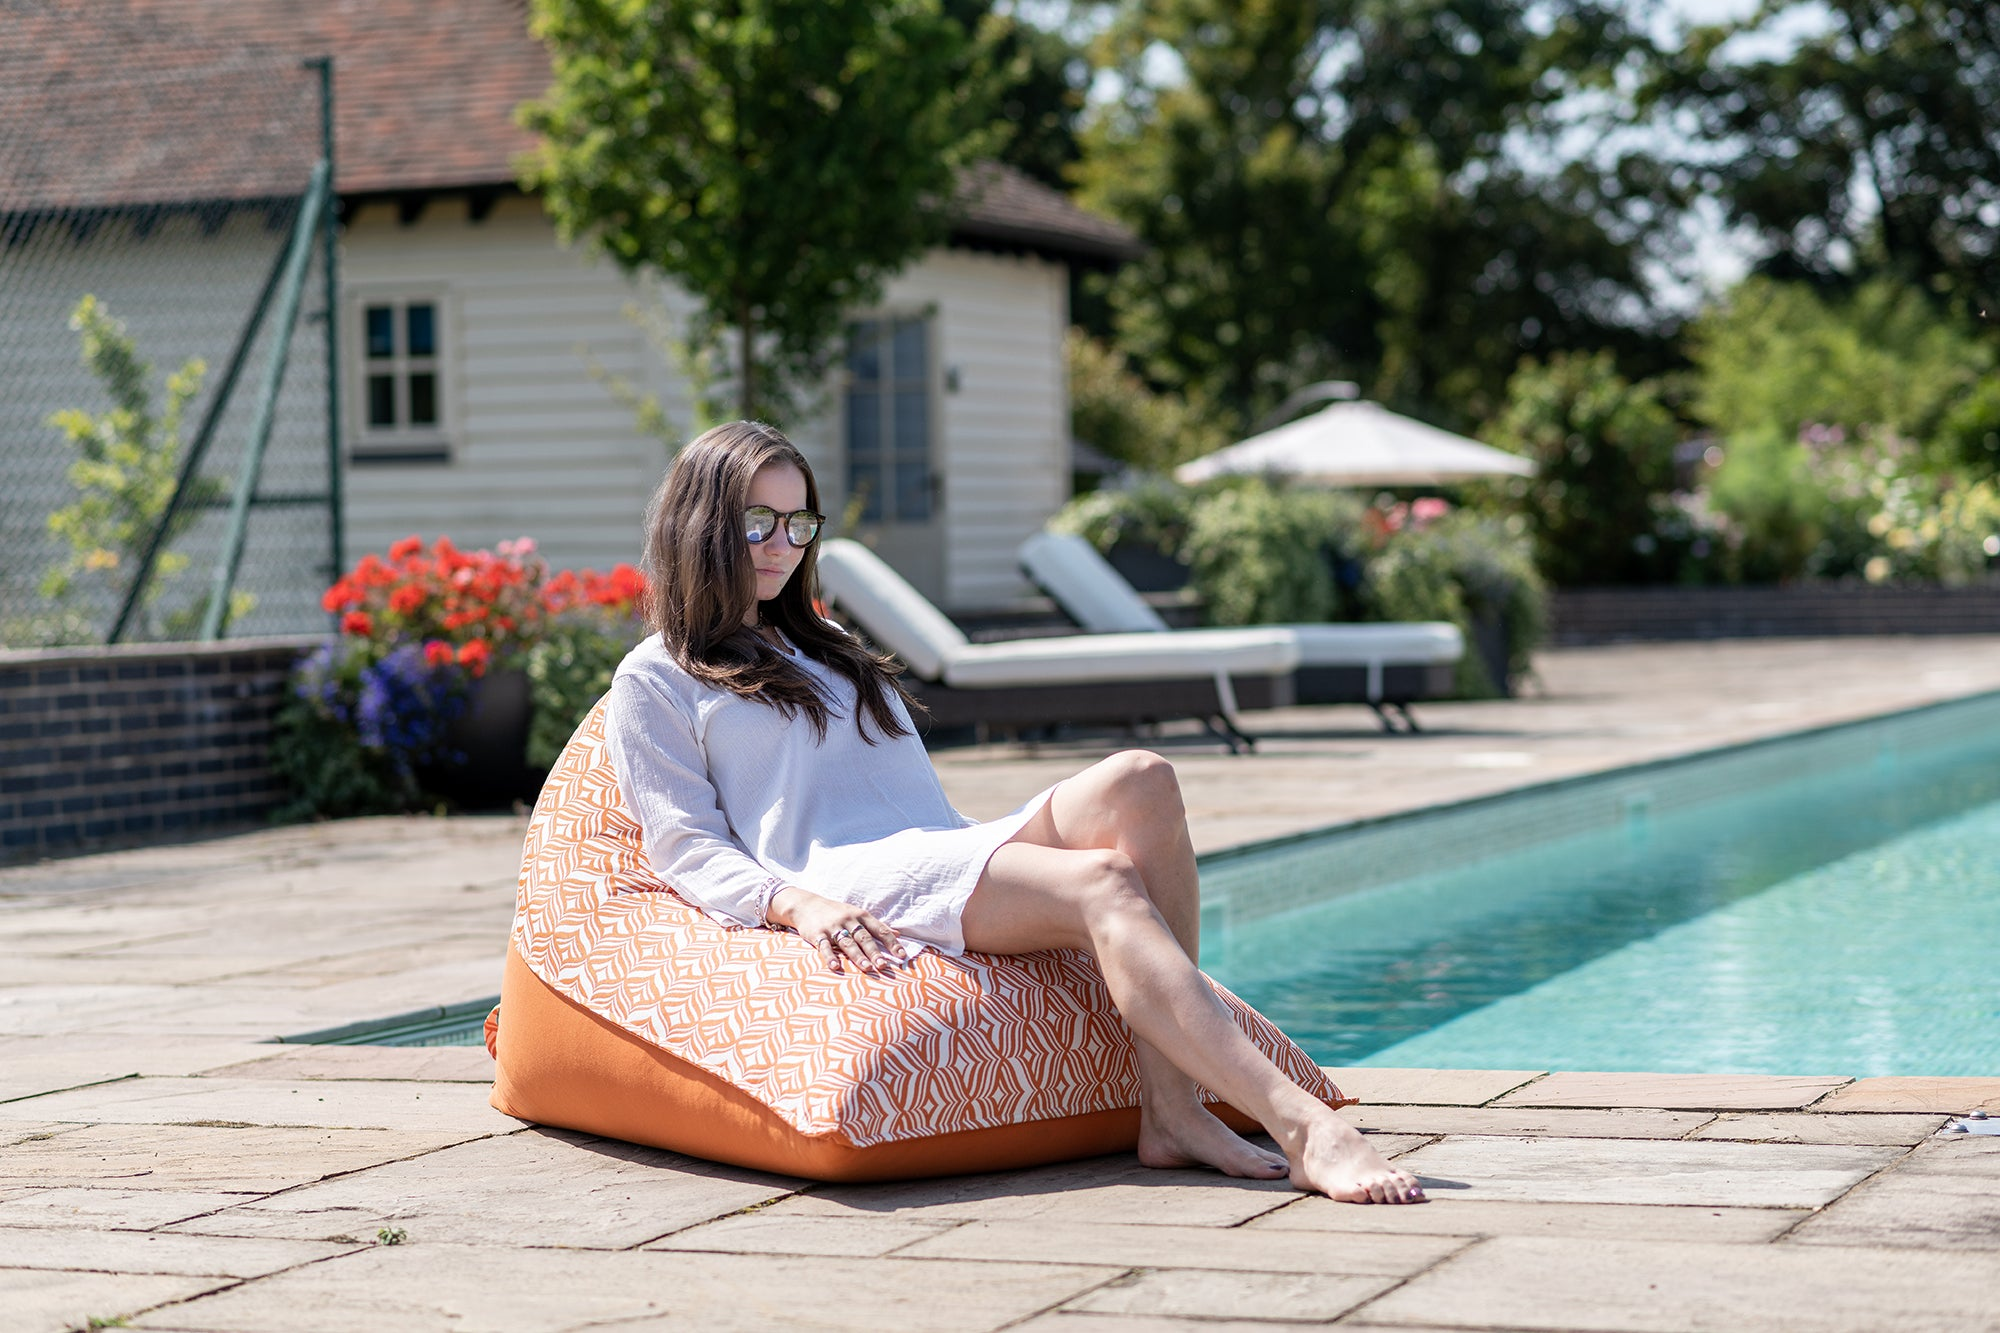 Orange Bean Bag Lounger with girl by the pool